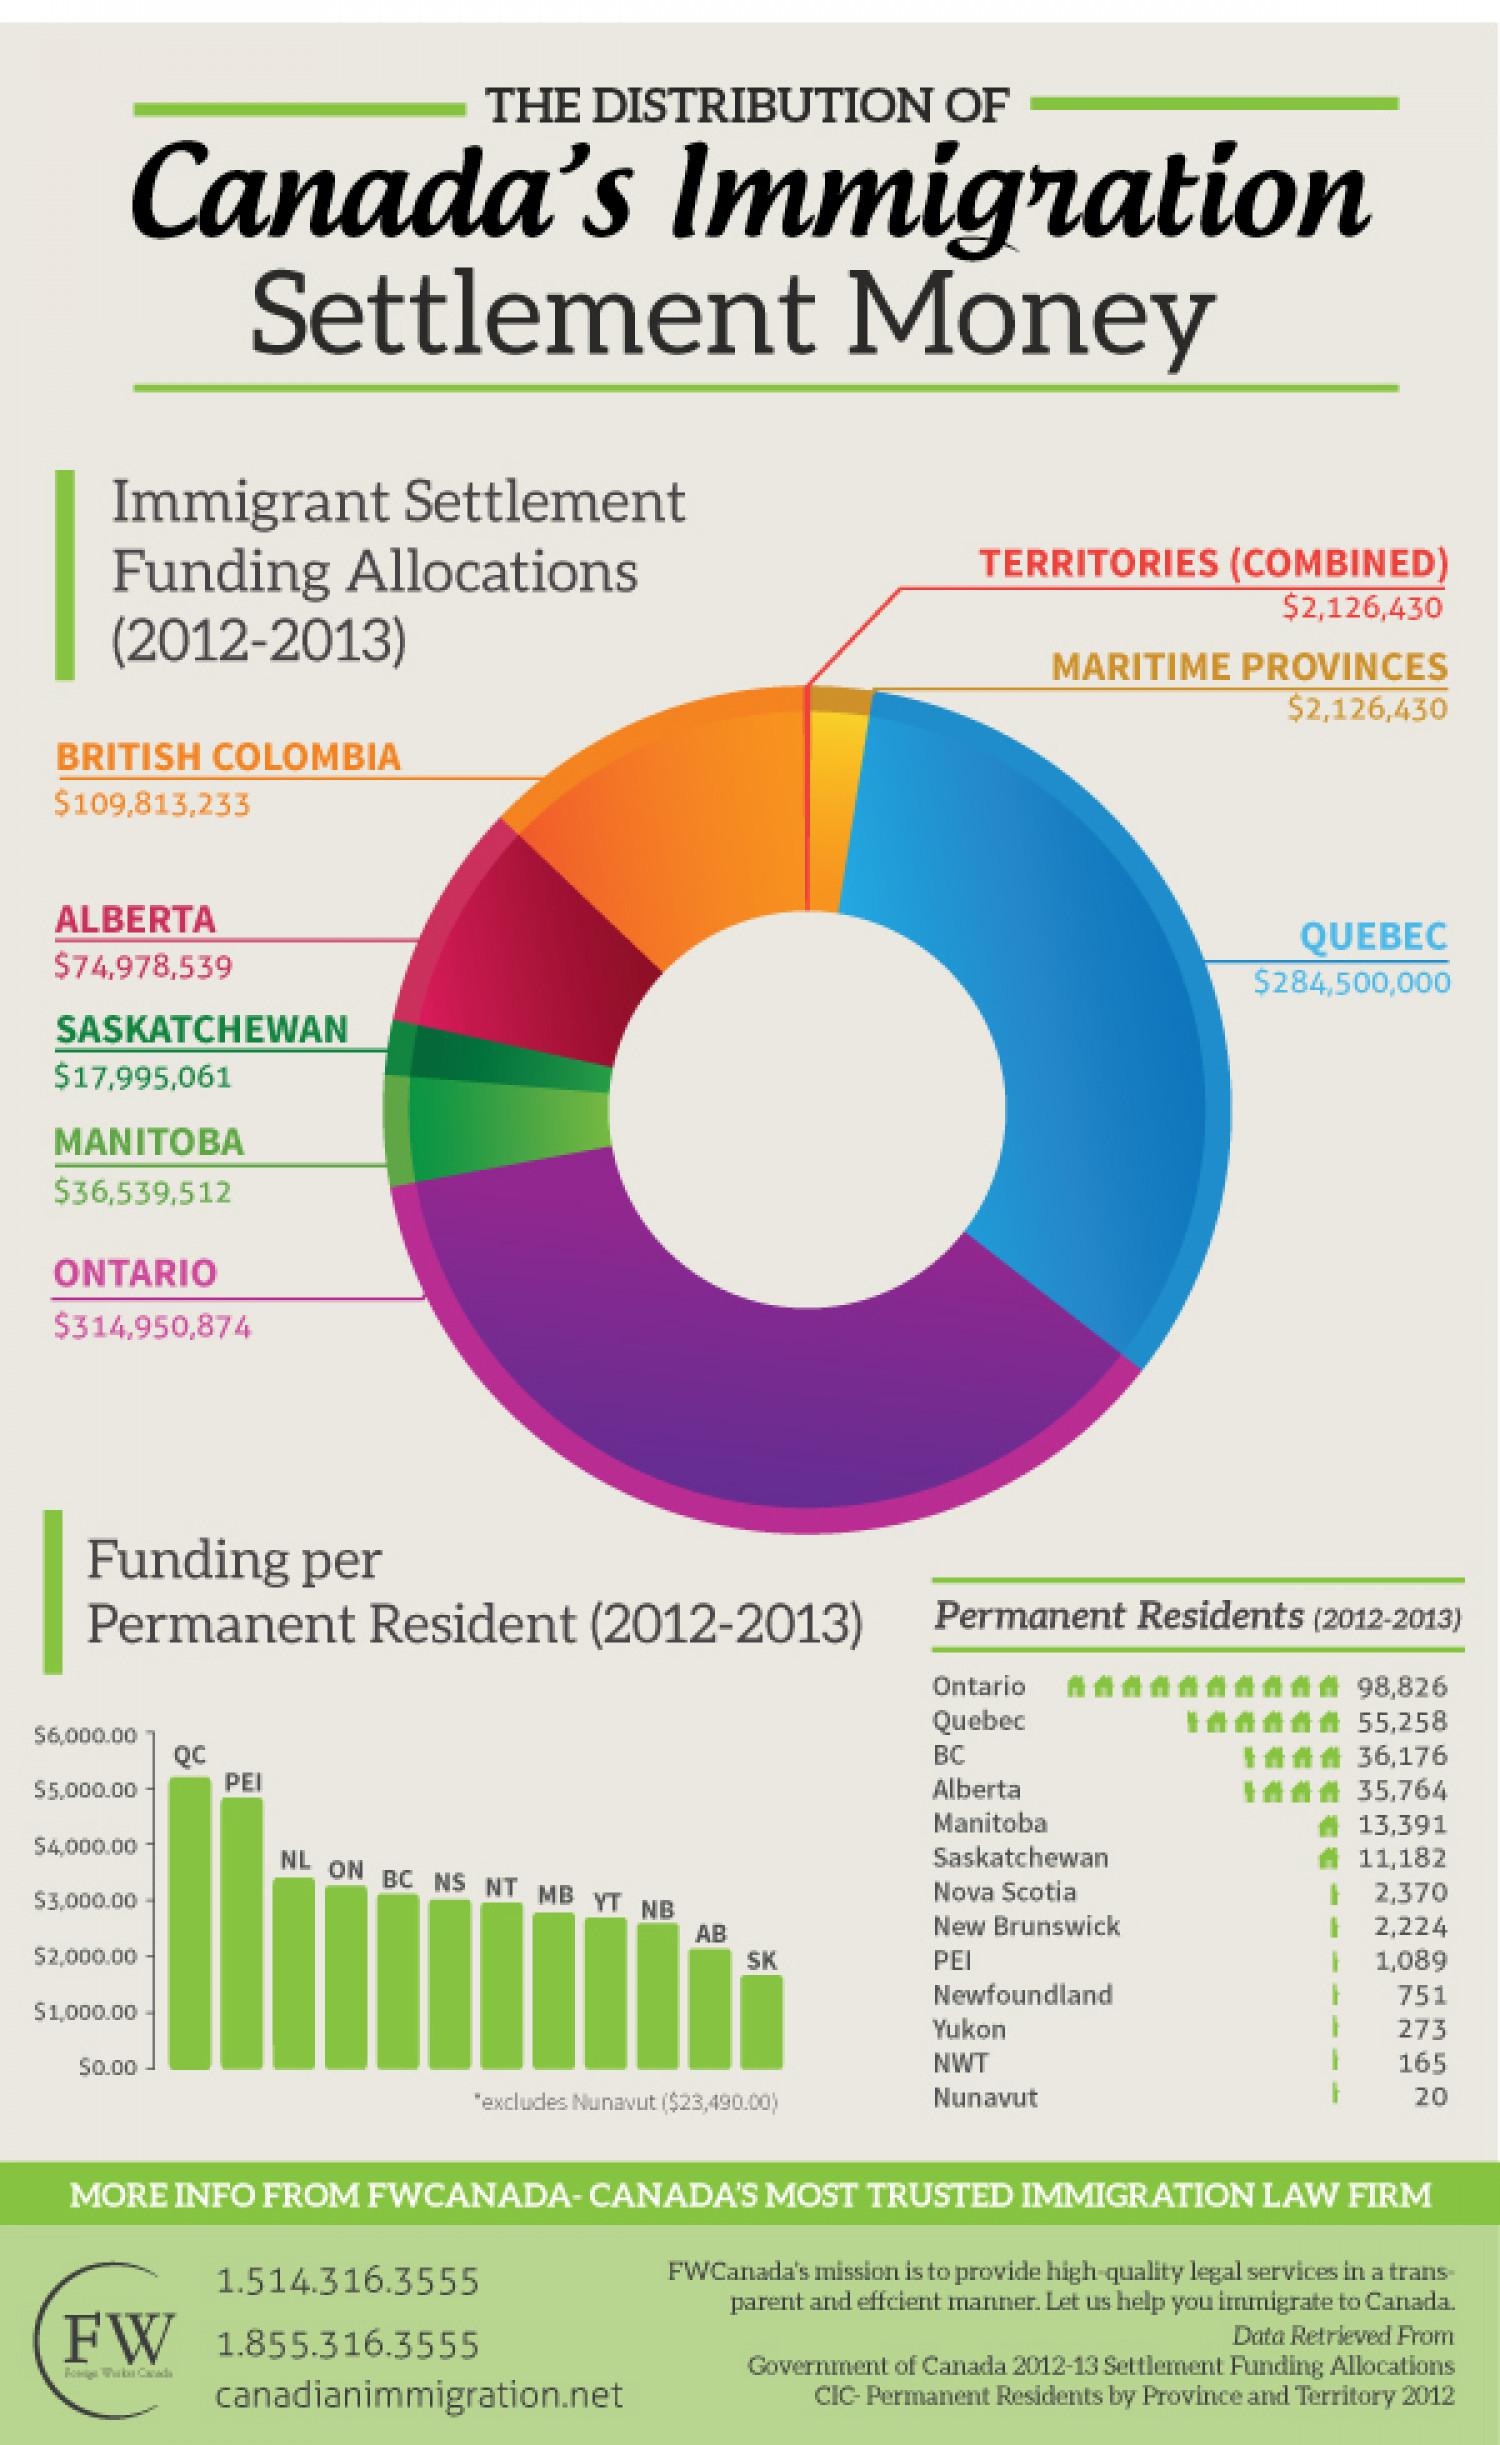 The Distribution of Canada's Immigration Settlement Money Infographic